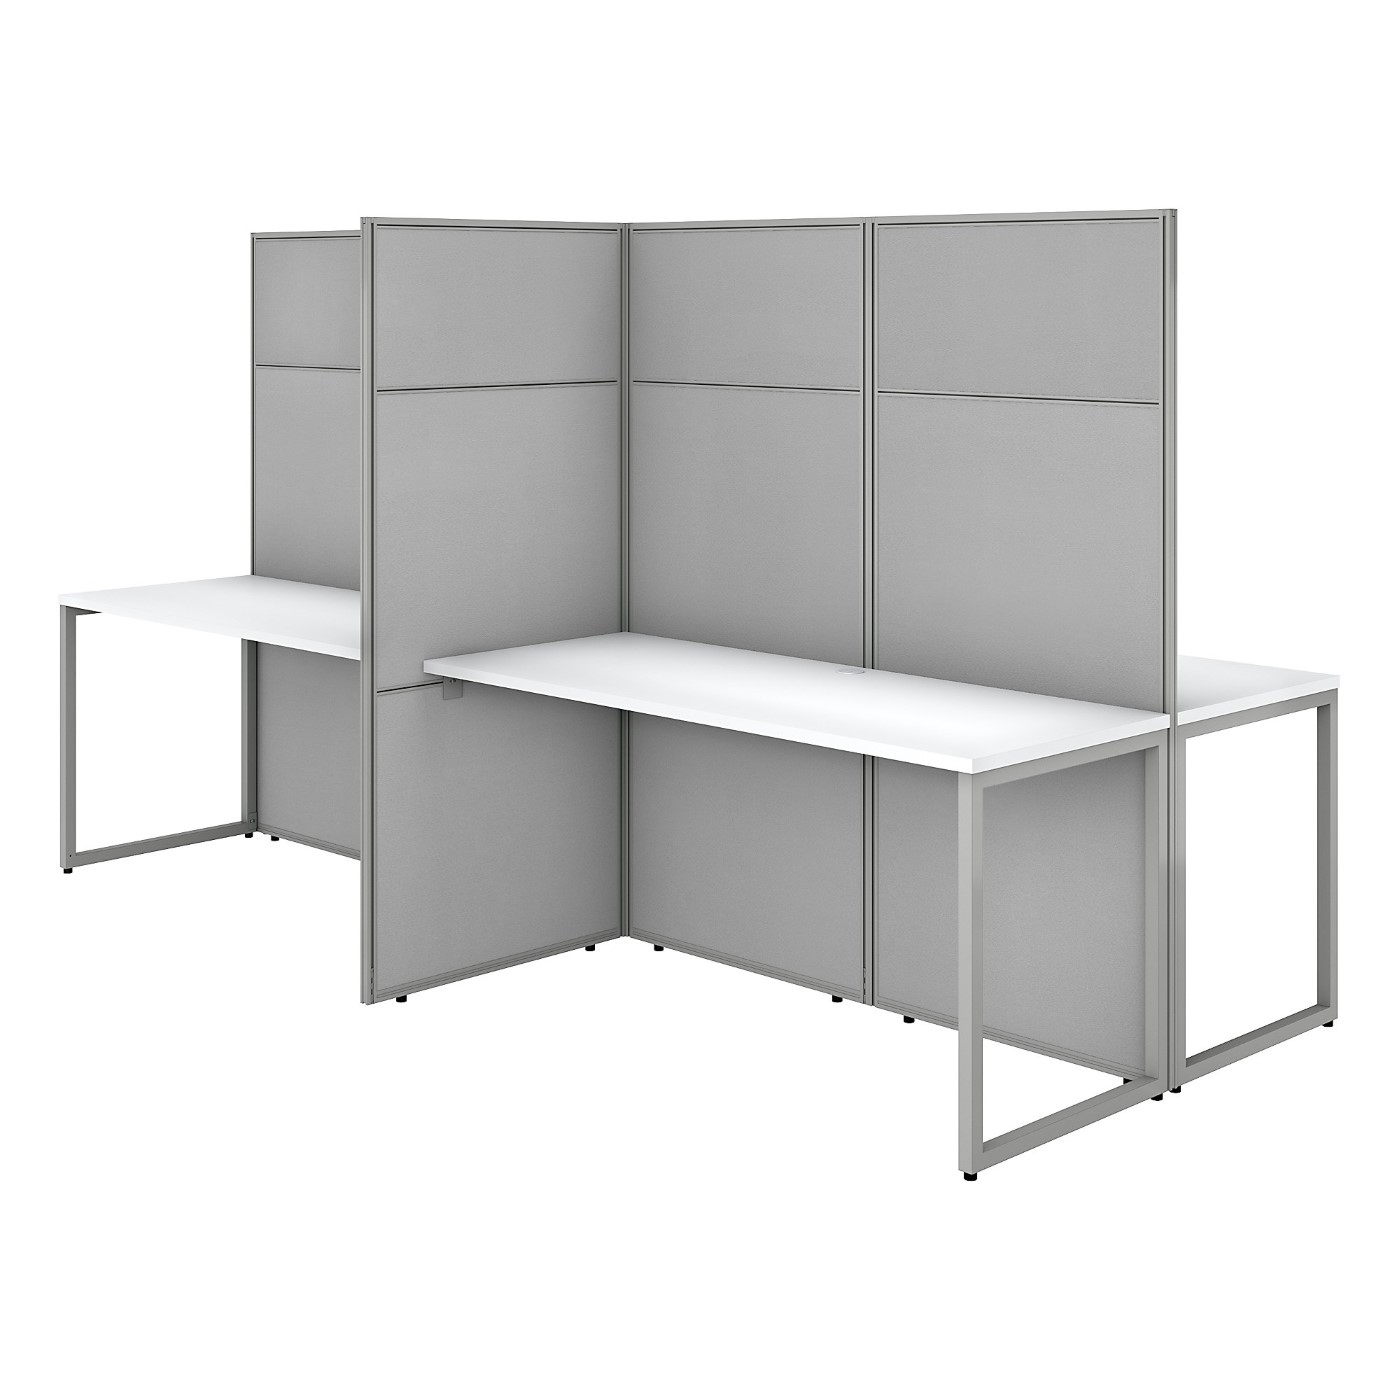 BUSH BUSINESS FURNITURE EASY OFFICE 60W 4 PERSON CUBICLE DESK WORKSTATION WITH 66H PANELS. FREE SHIPPING SALE DEDUCT 10% MORE ENTER '10percent' IN COUPON CODE BOX WHILE CHECKING OUT. ENDS 5-31-20.